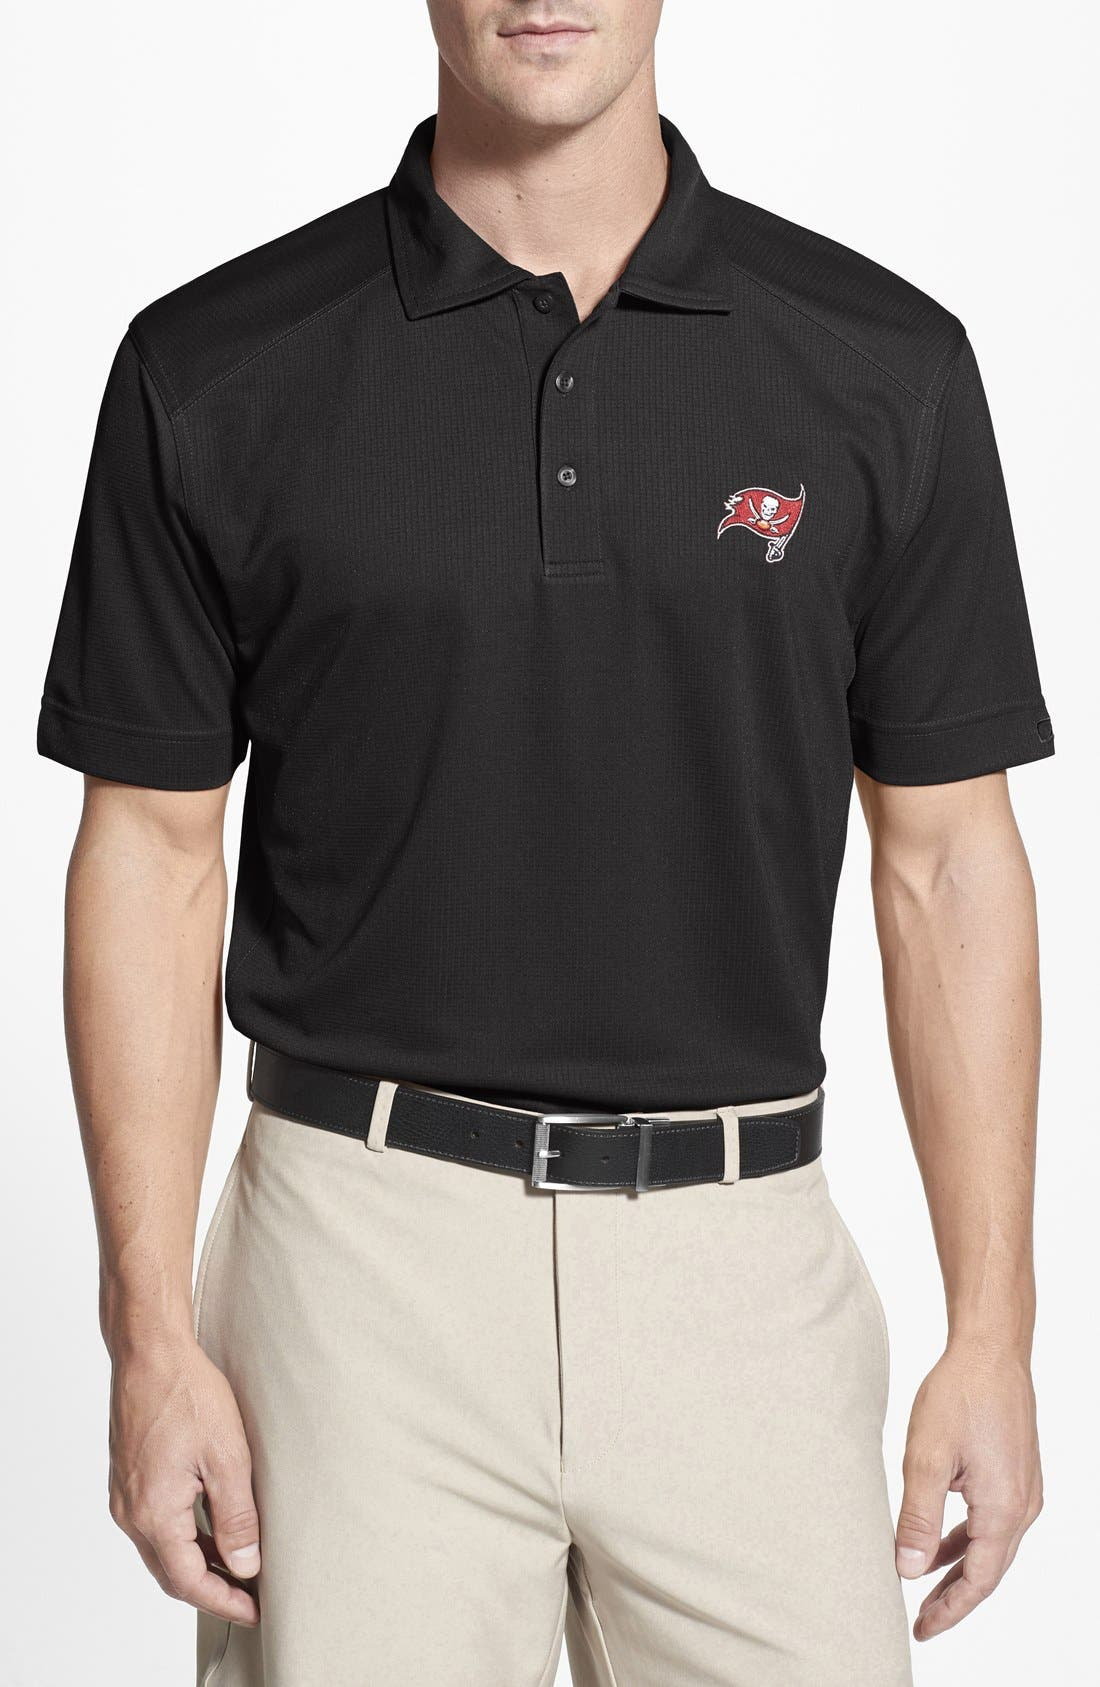 Tampa Bay Buccaneers - Genre DryTec Moisture Wicking Polo,                             Main thumbnail 1, color,                             Black